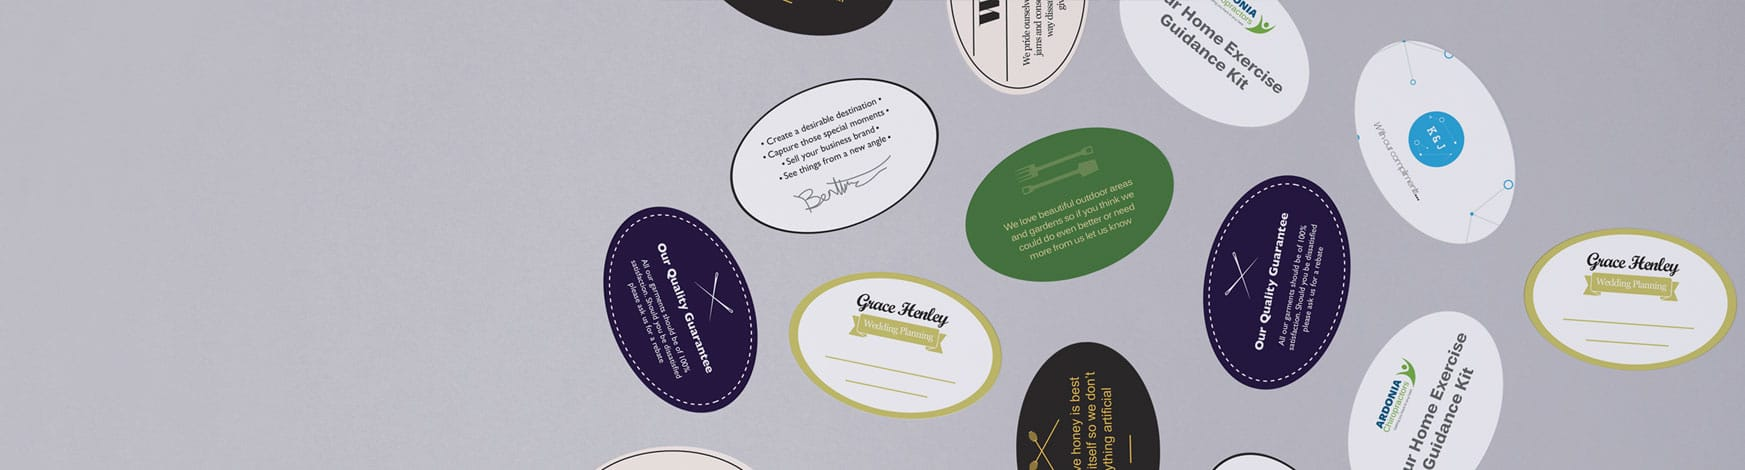 Avery WePrint Personalised Oval Labels